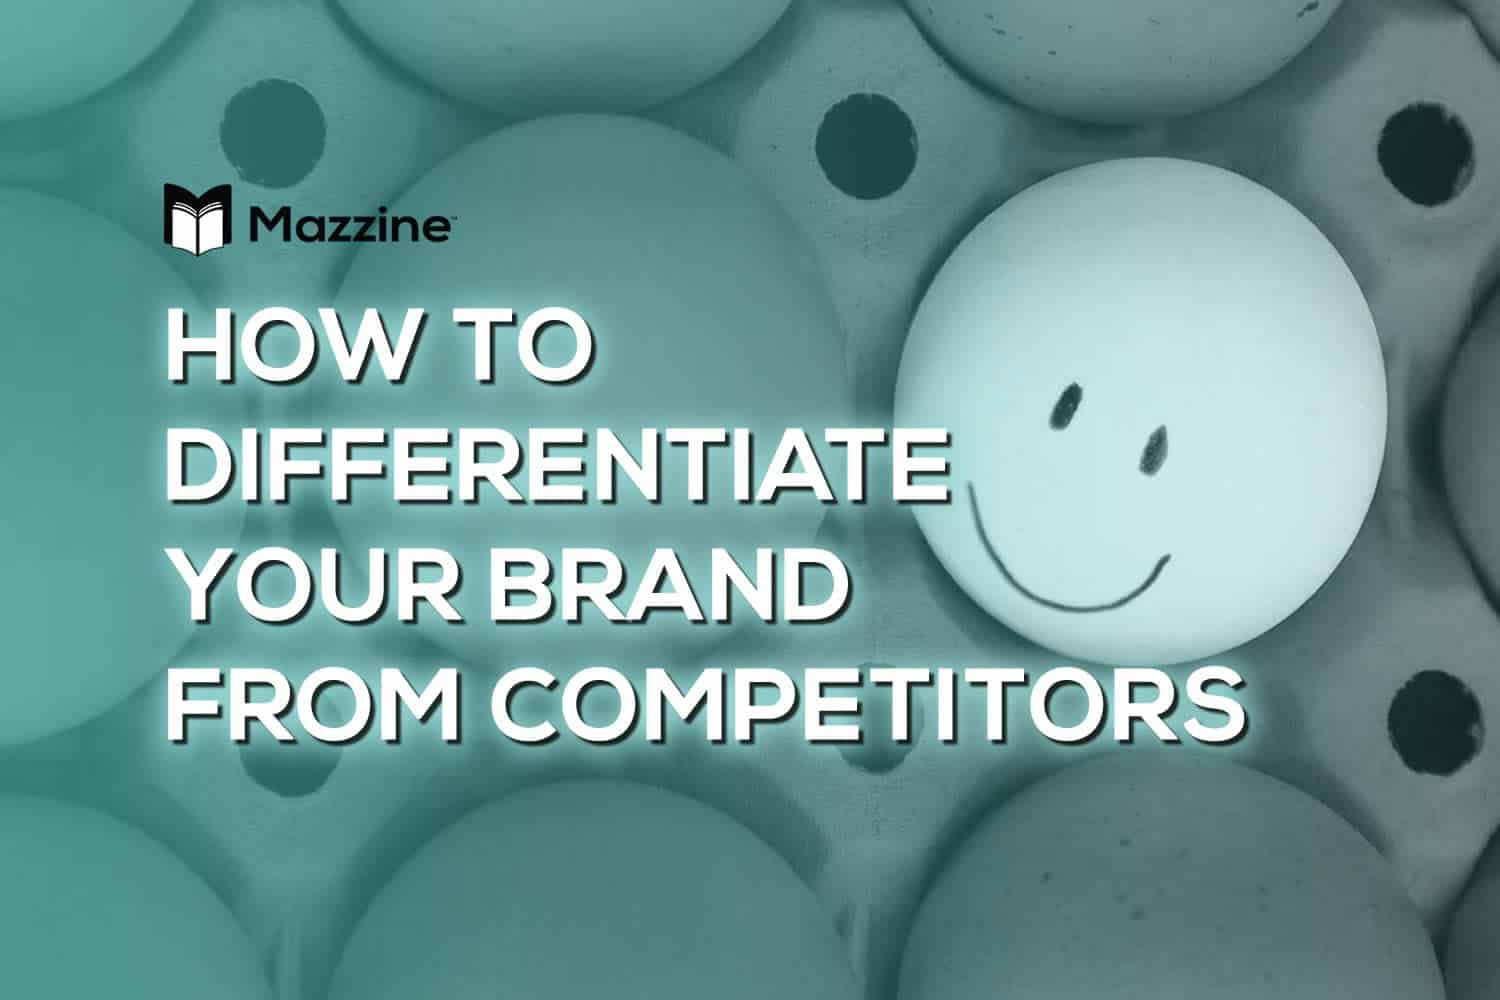 How to Differentiate Your Brand from Competitors